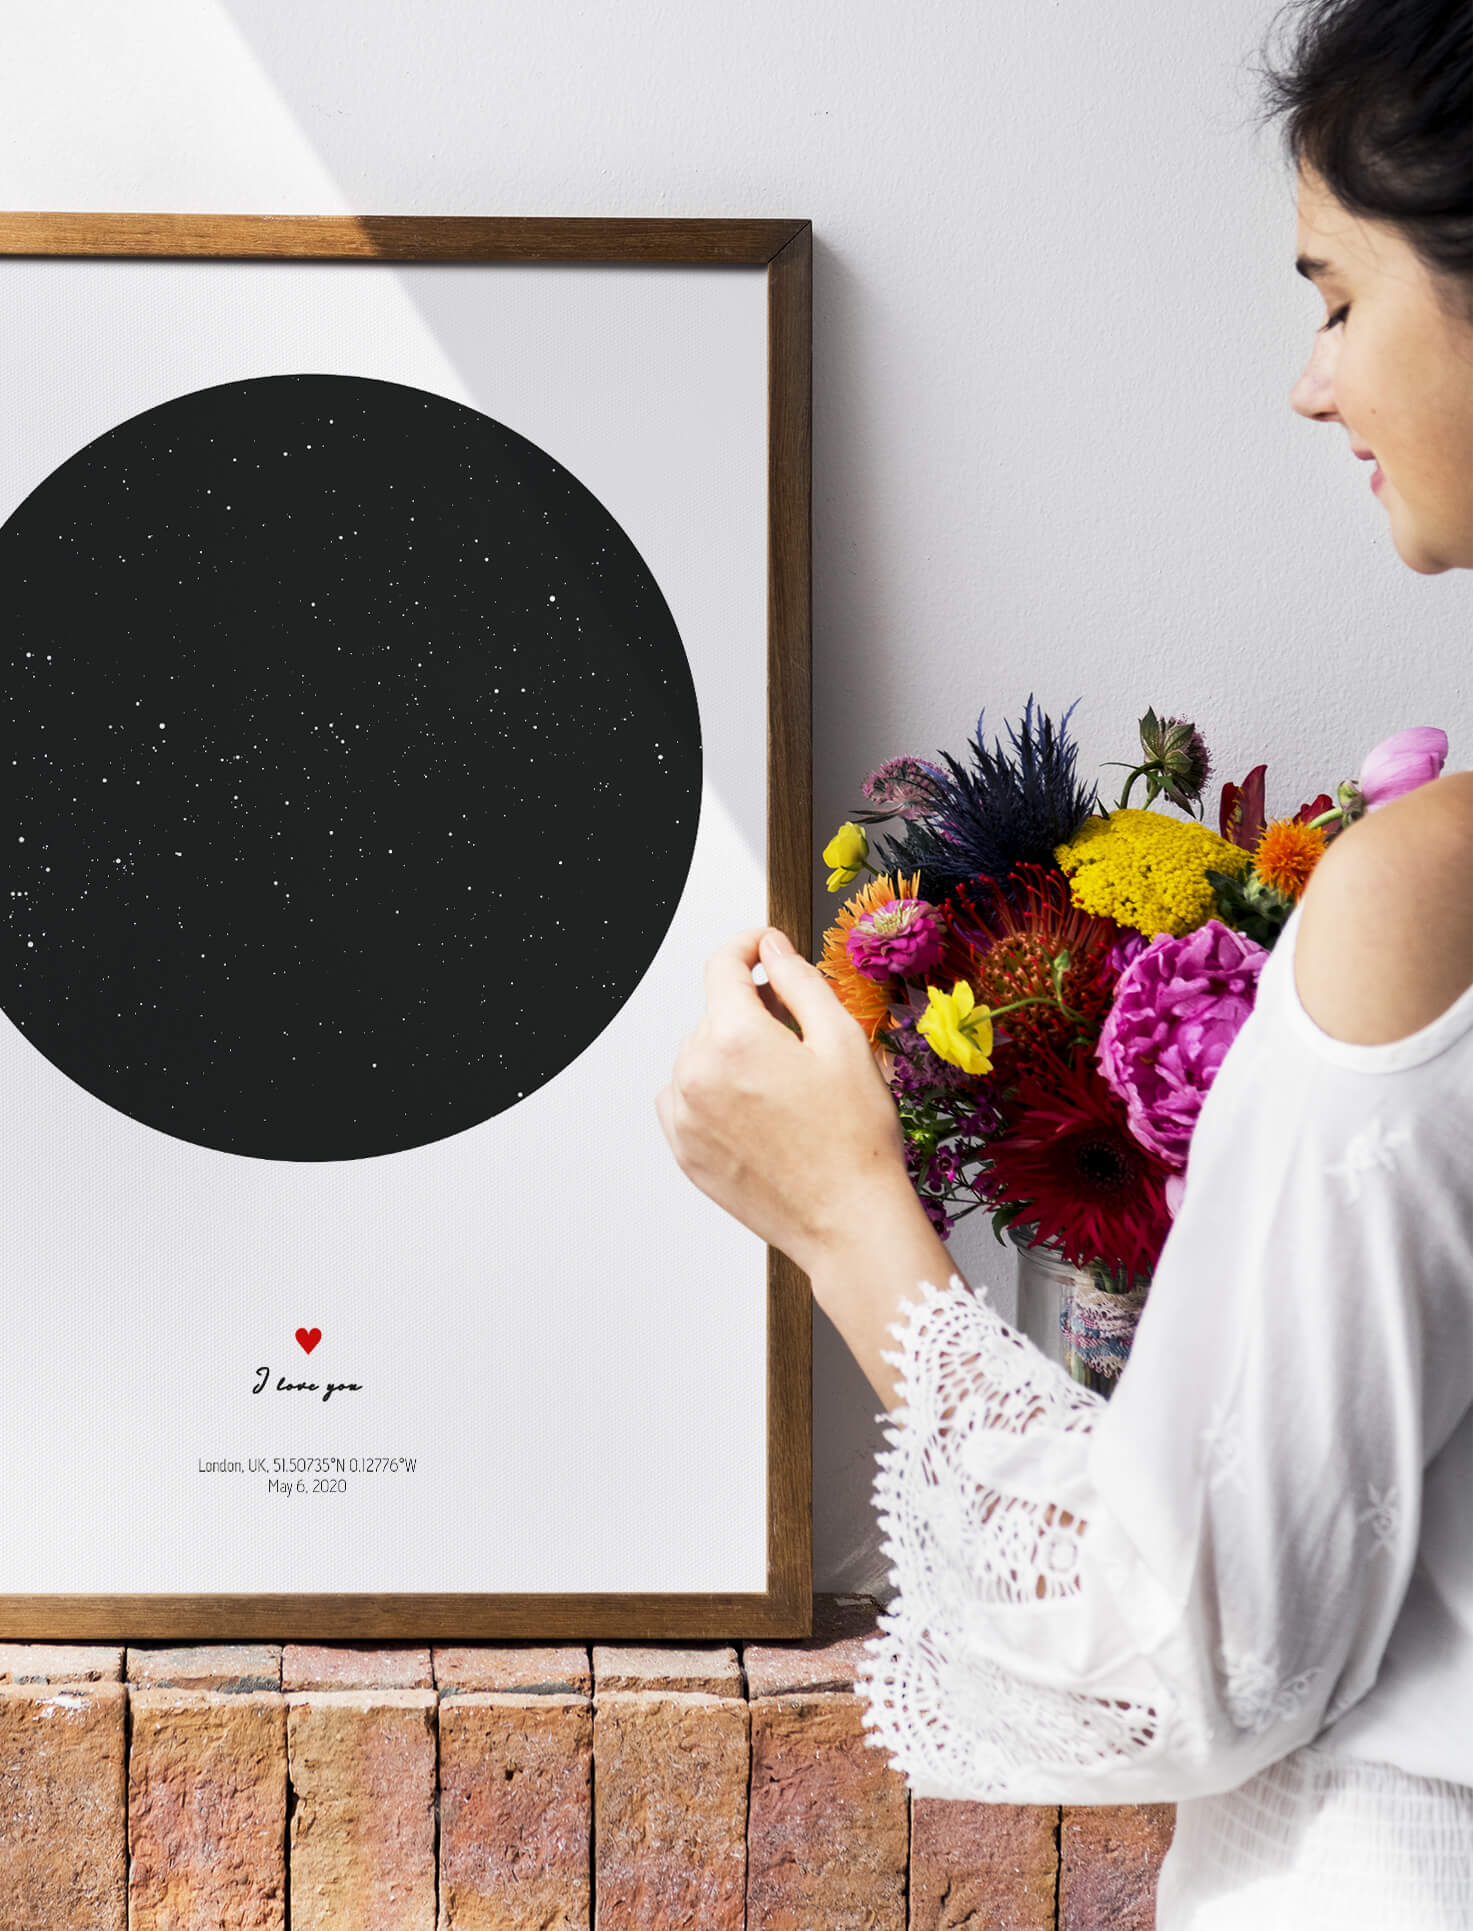 Flowers and Star Map Gift for Her